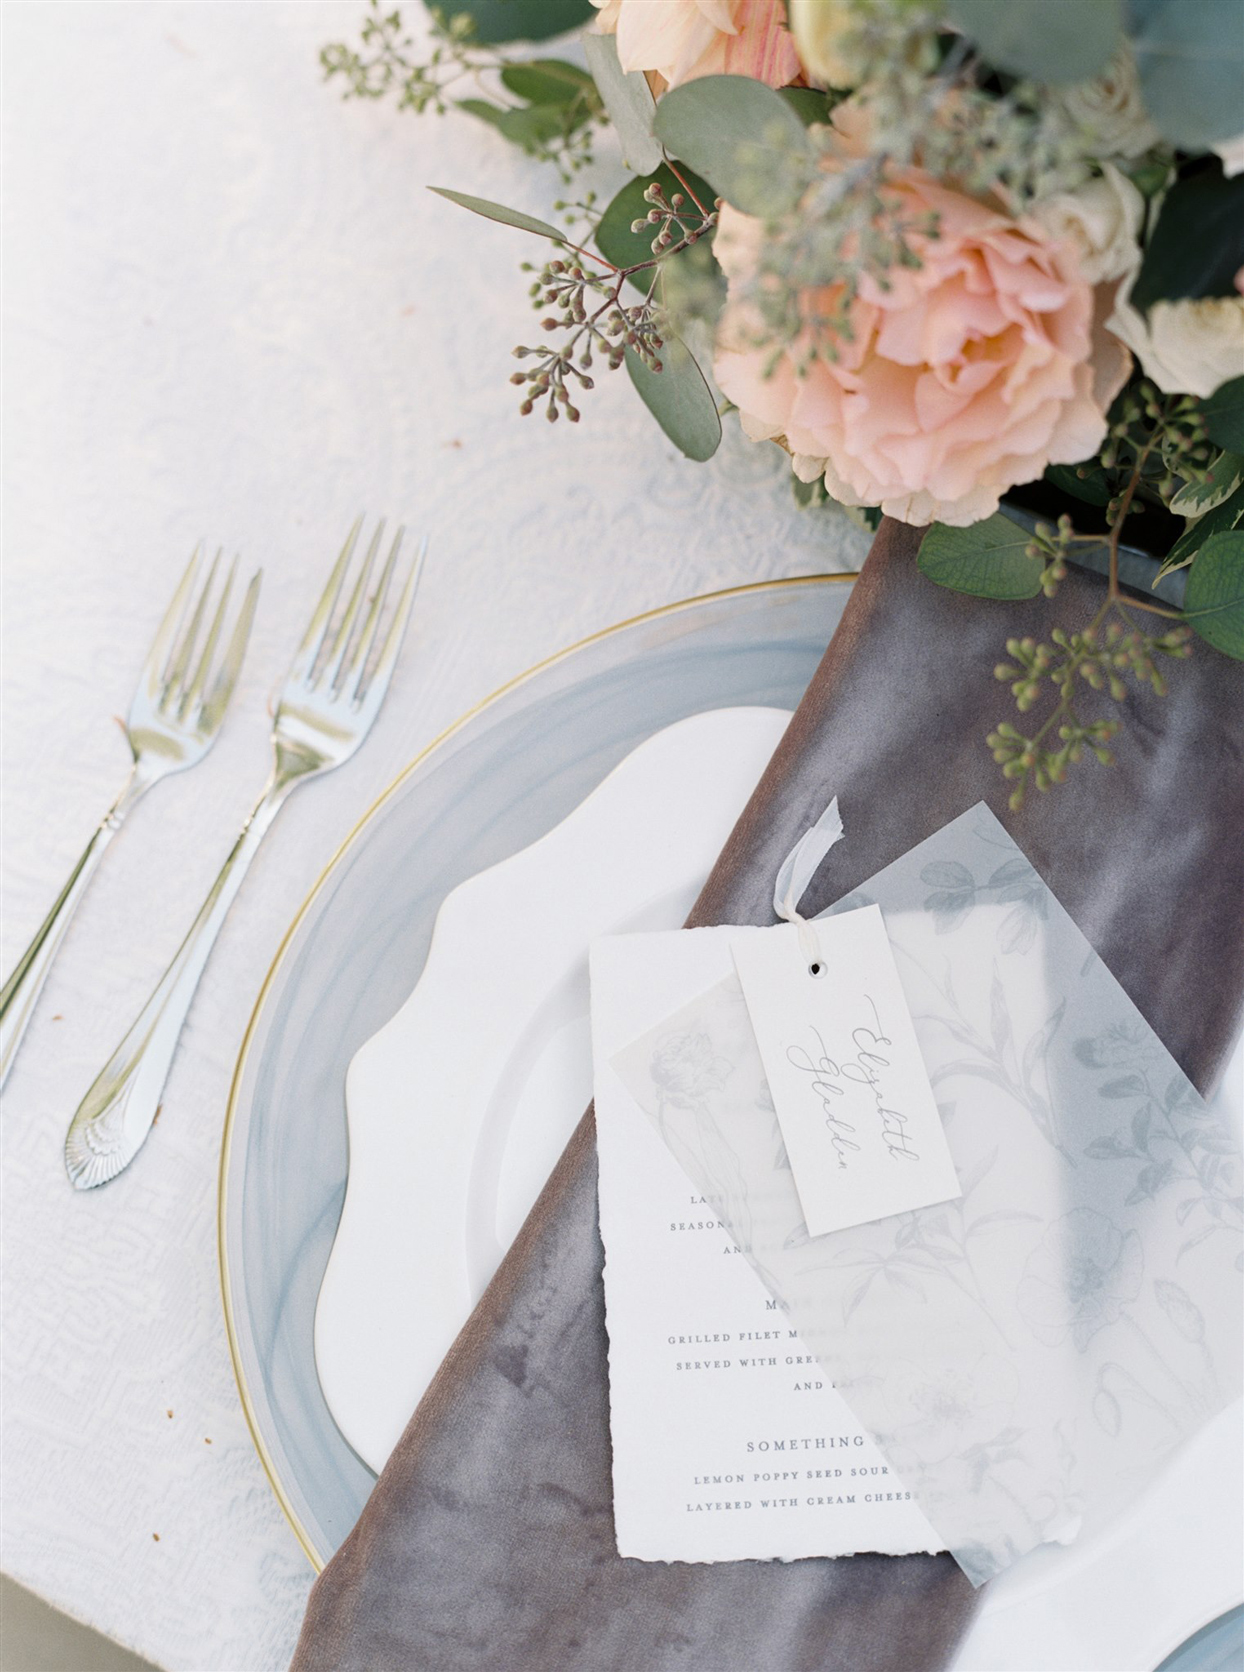 Table setting with dinner menu